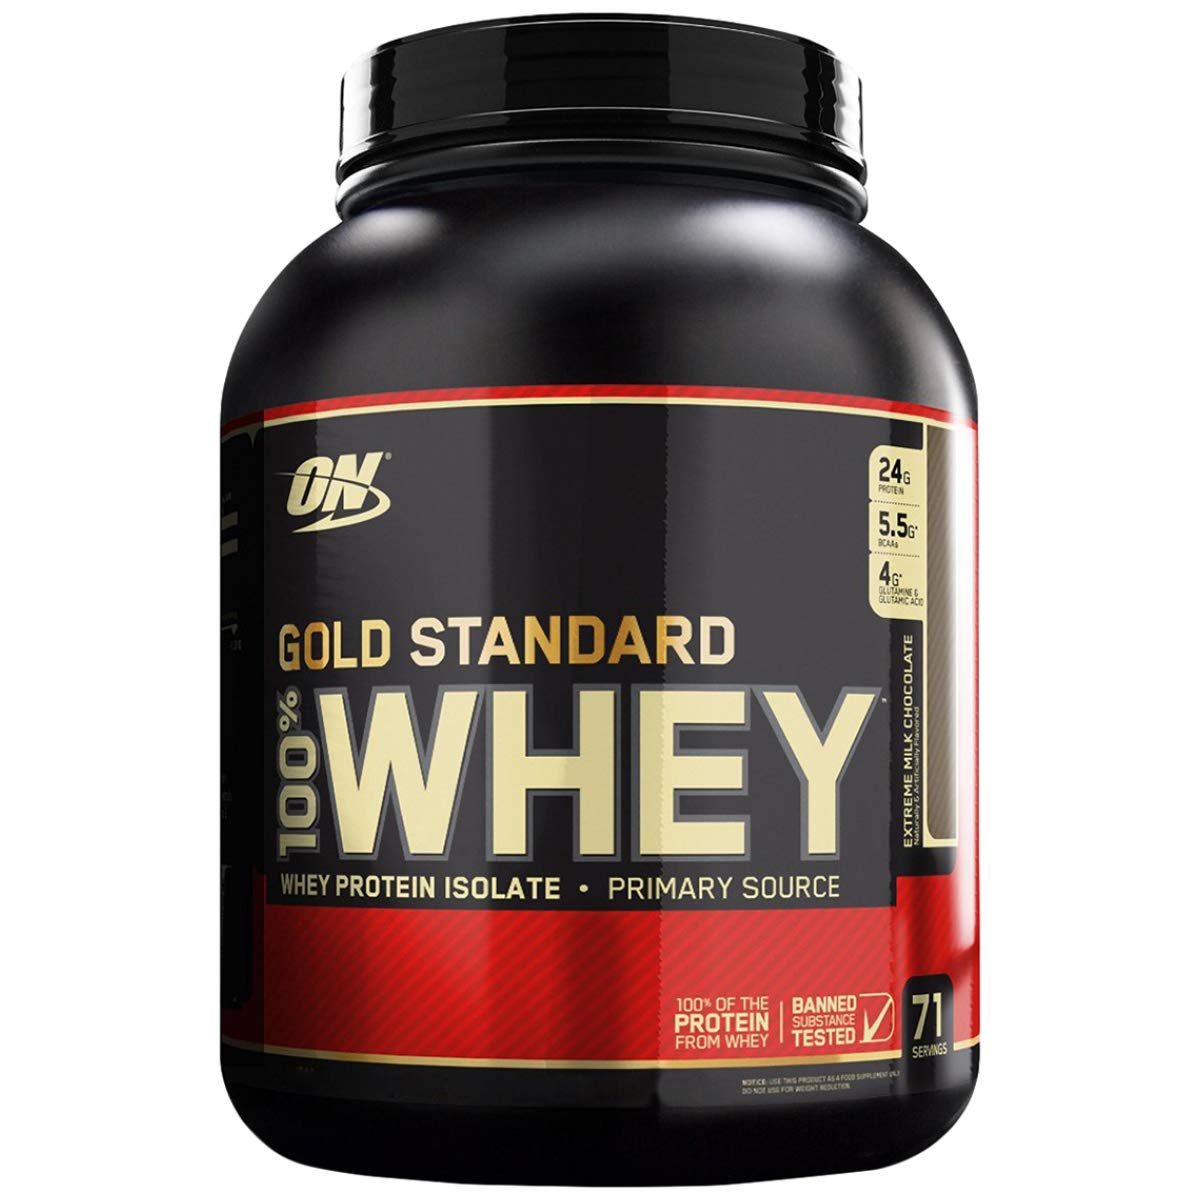 Amazon.com: OPTIMUM NUTRITION 100% Whey GOLD STANDARD, Extreme Milk Chocolate, 1 Pound (Pack of 6): Health & Personal Care